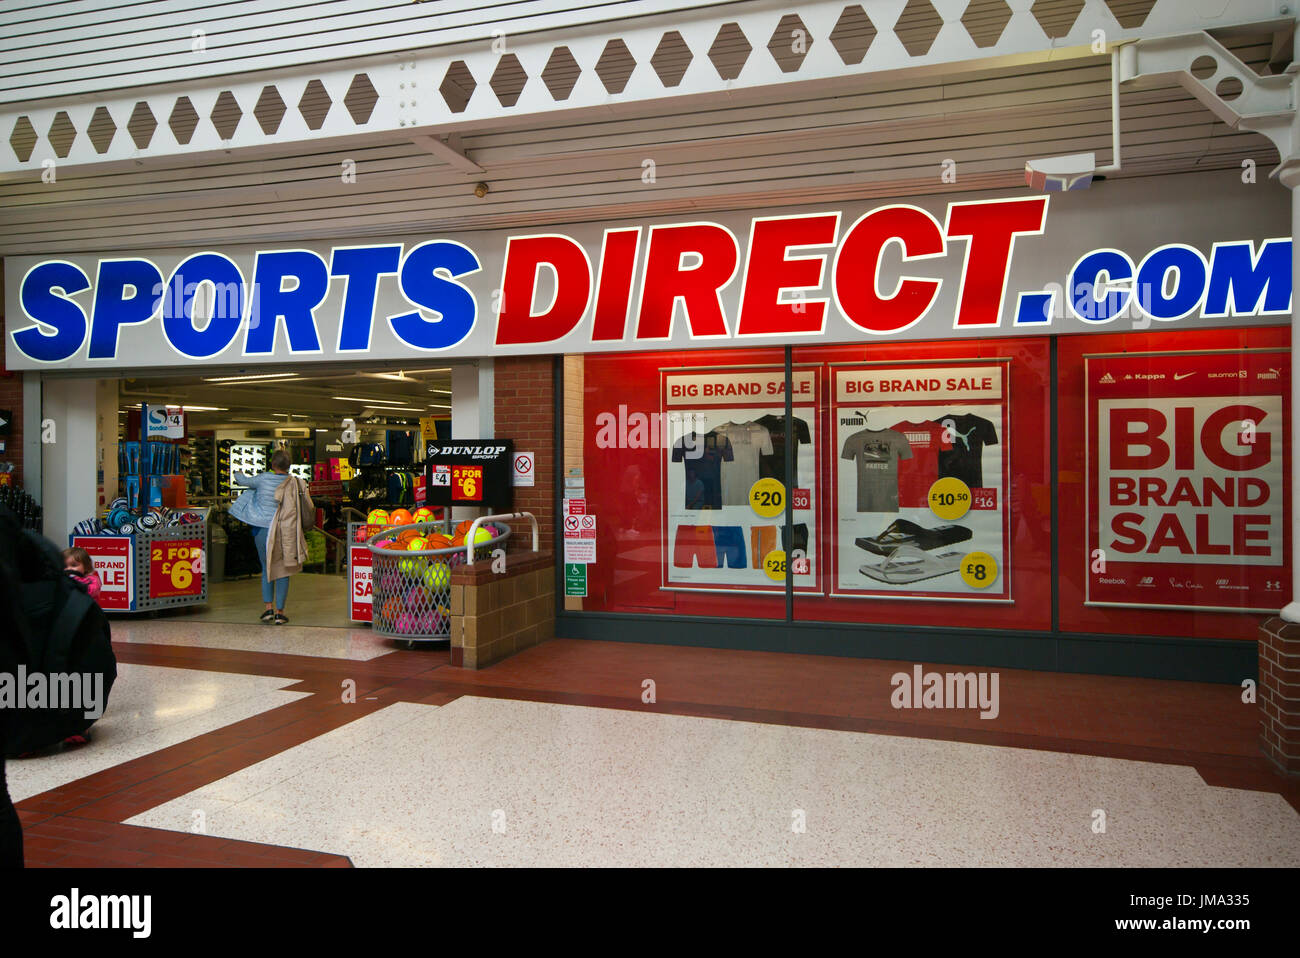 f84b5a111943 Front Exterior Outside Entrance to Sports Direct Shop Store - Stock Image